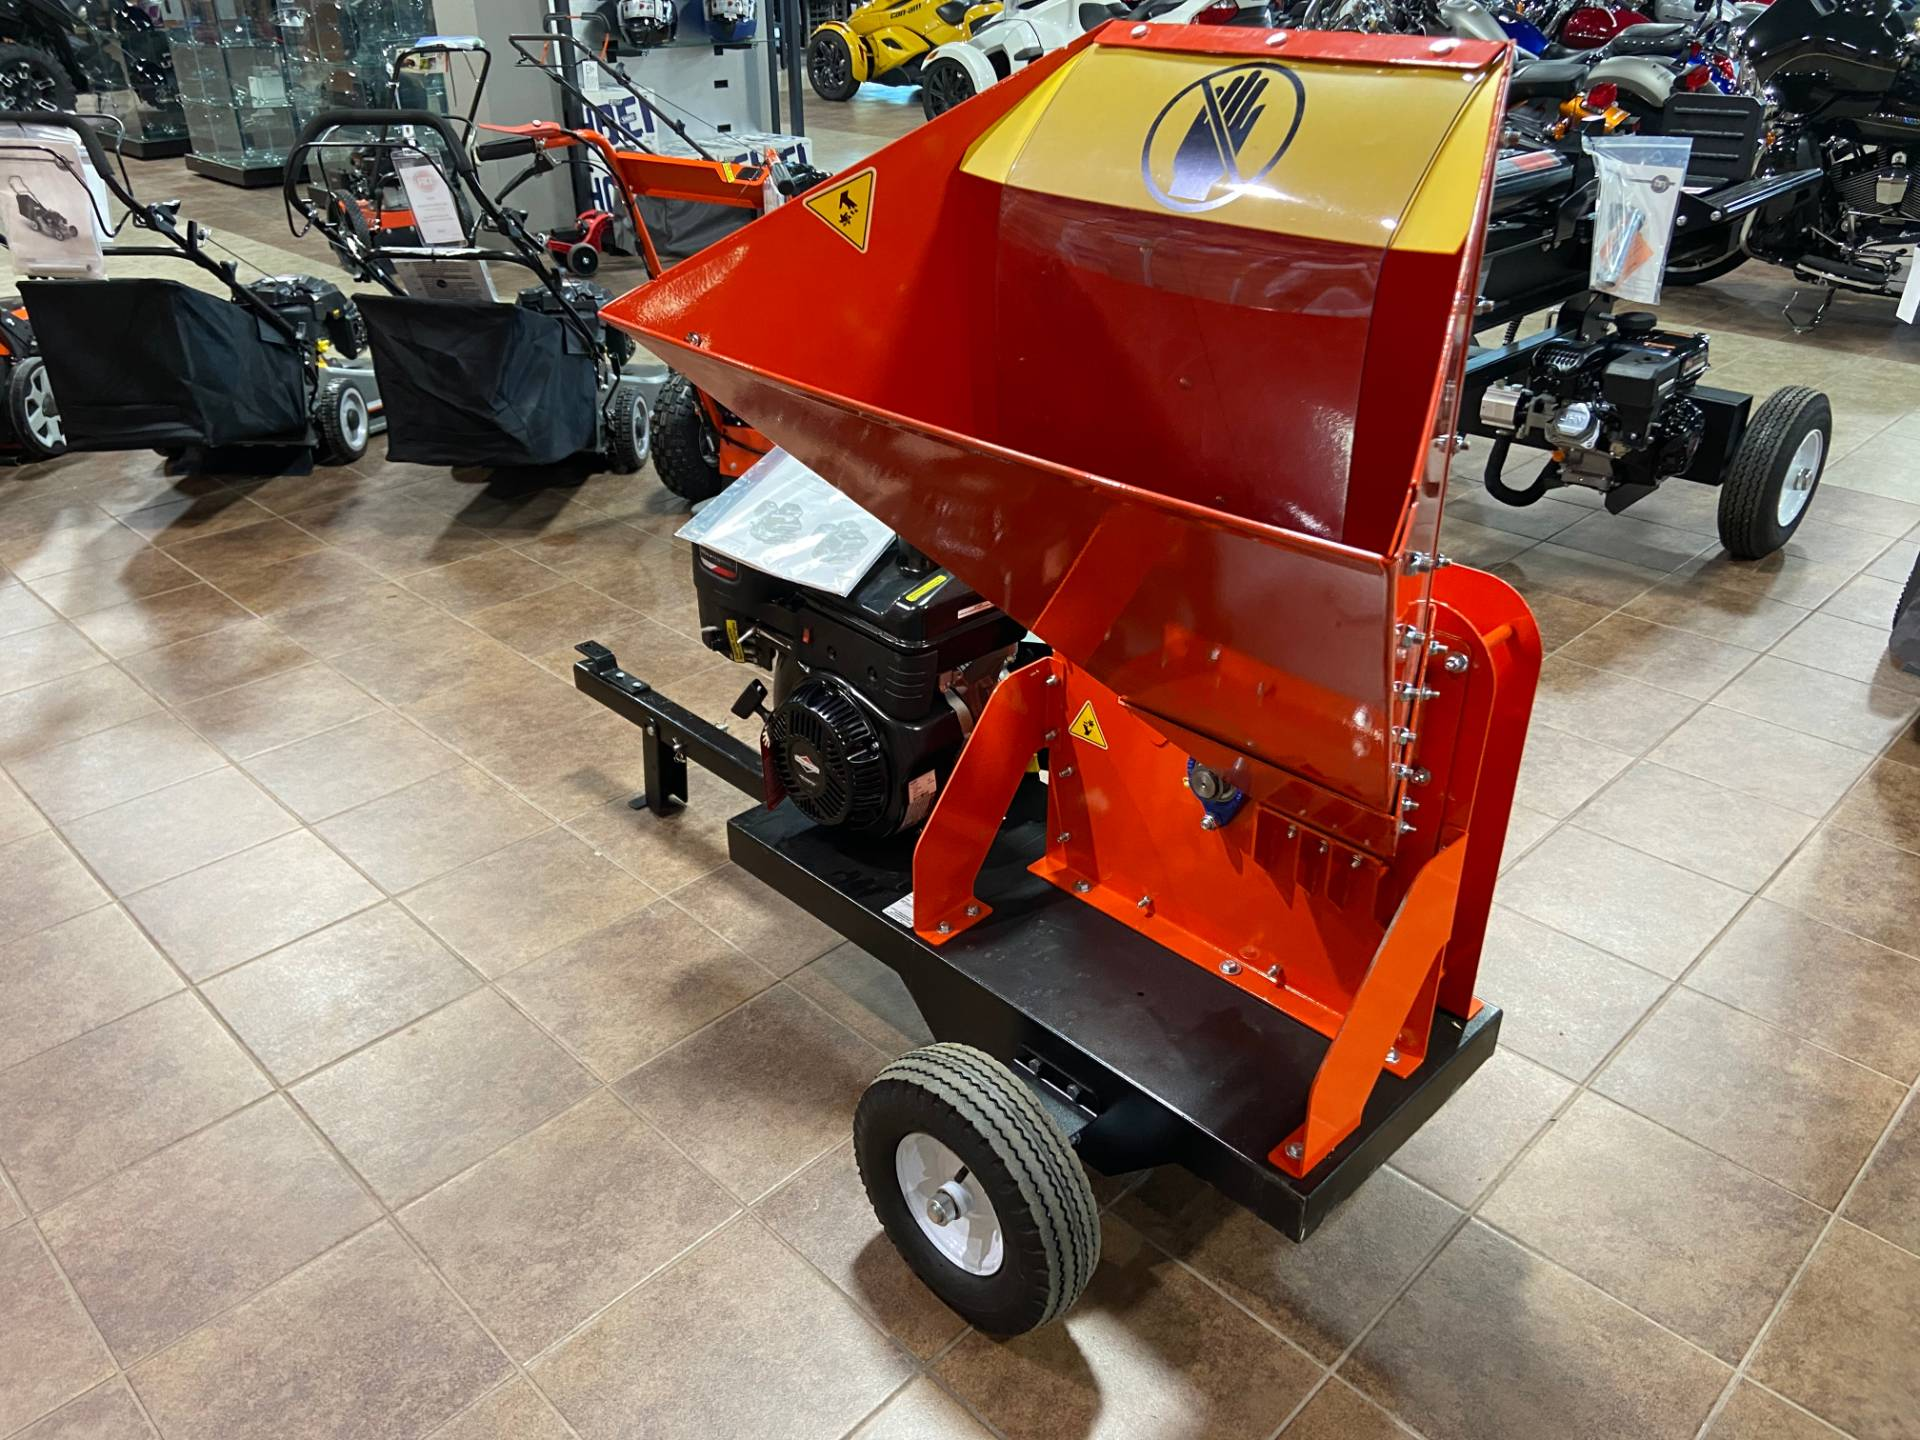 DR Power Equipment 11.5 HP Pro 475 Wood Chipper in Barre, Massachusetts - Photo 5